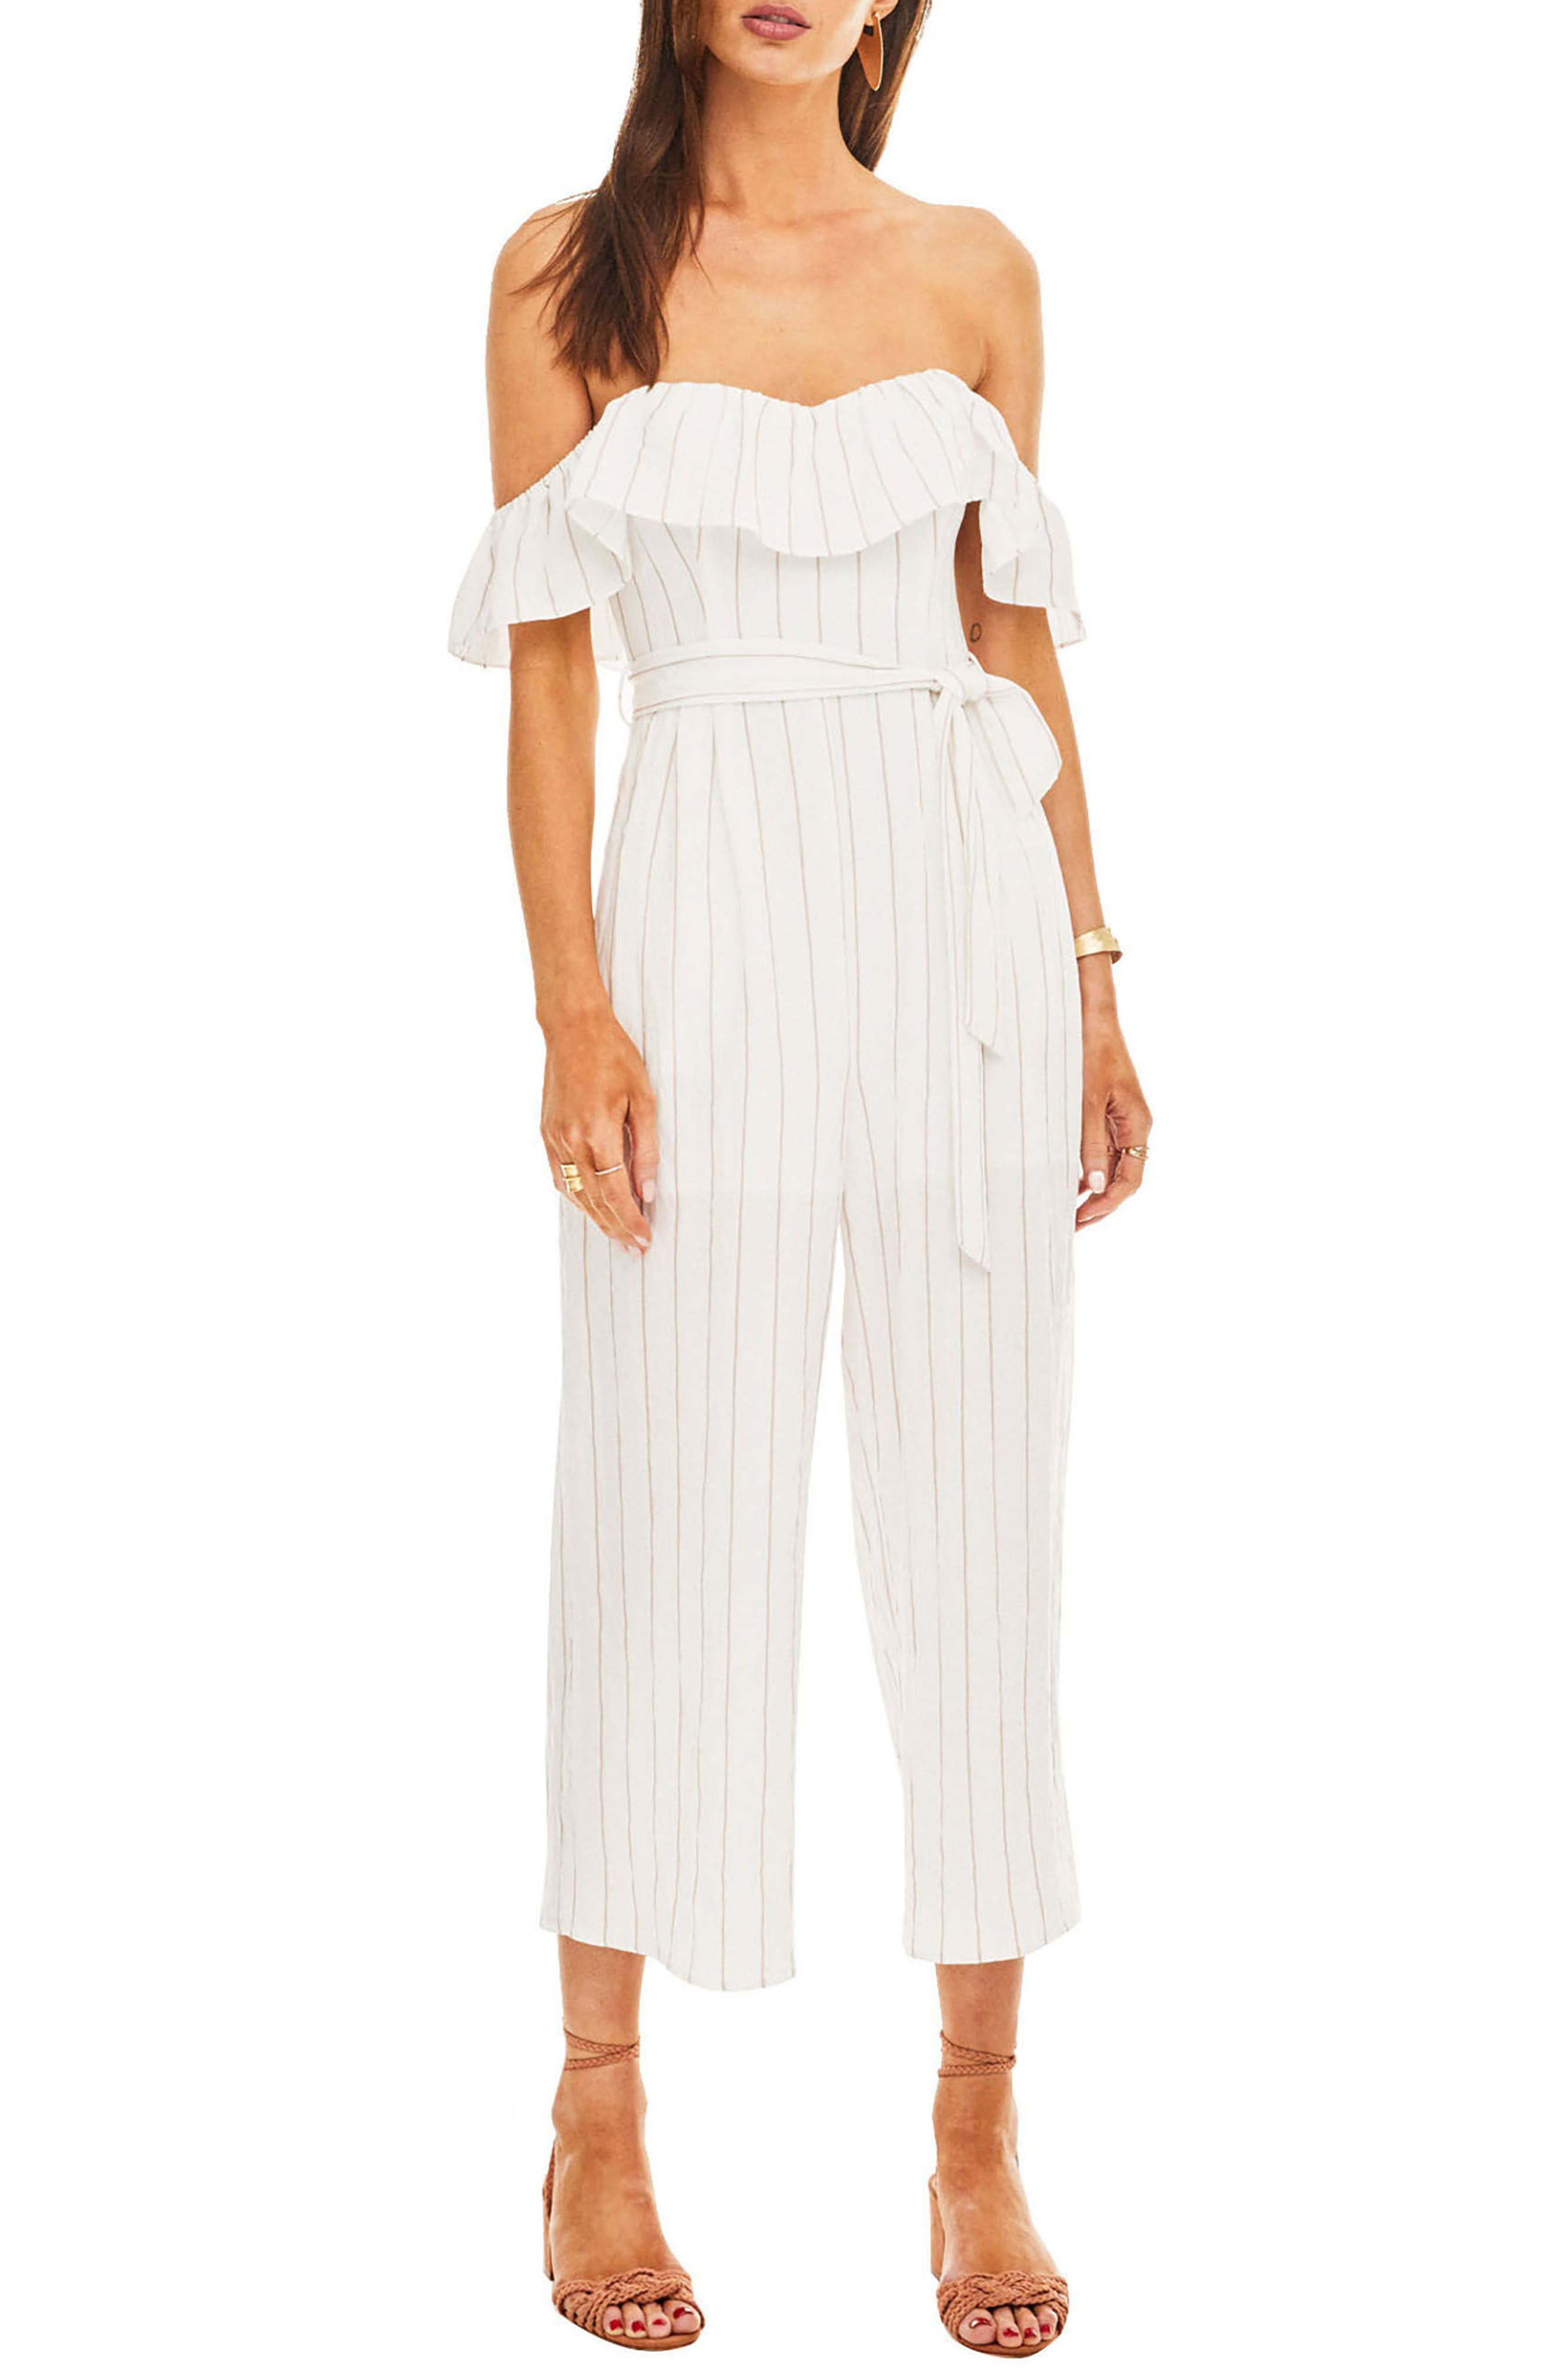 ASTR Keely Strapless Jumpsuit,                             Main thumbnail 1, color,                             100